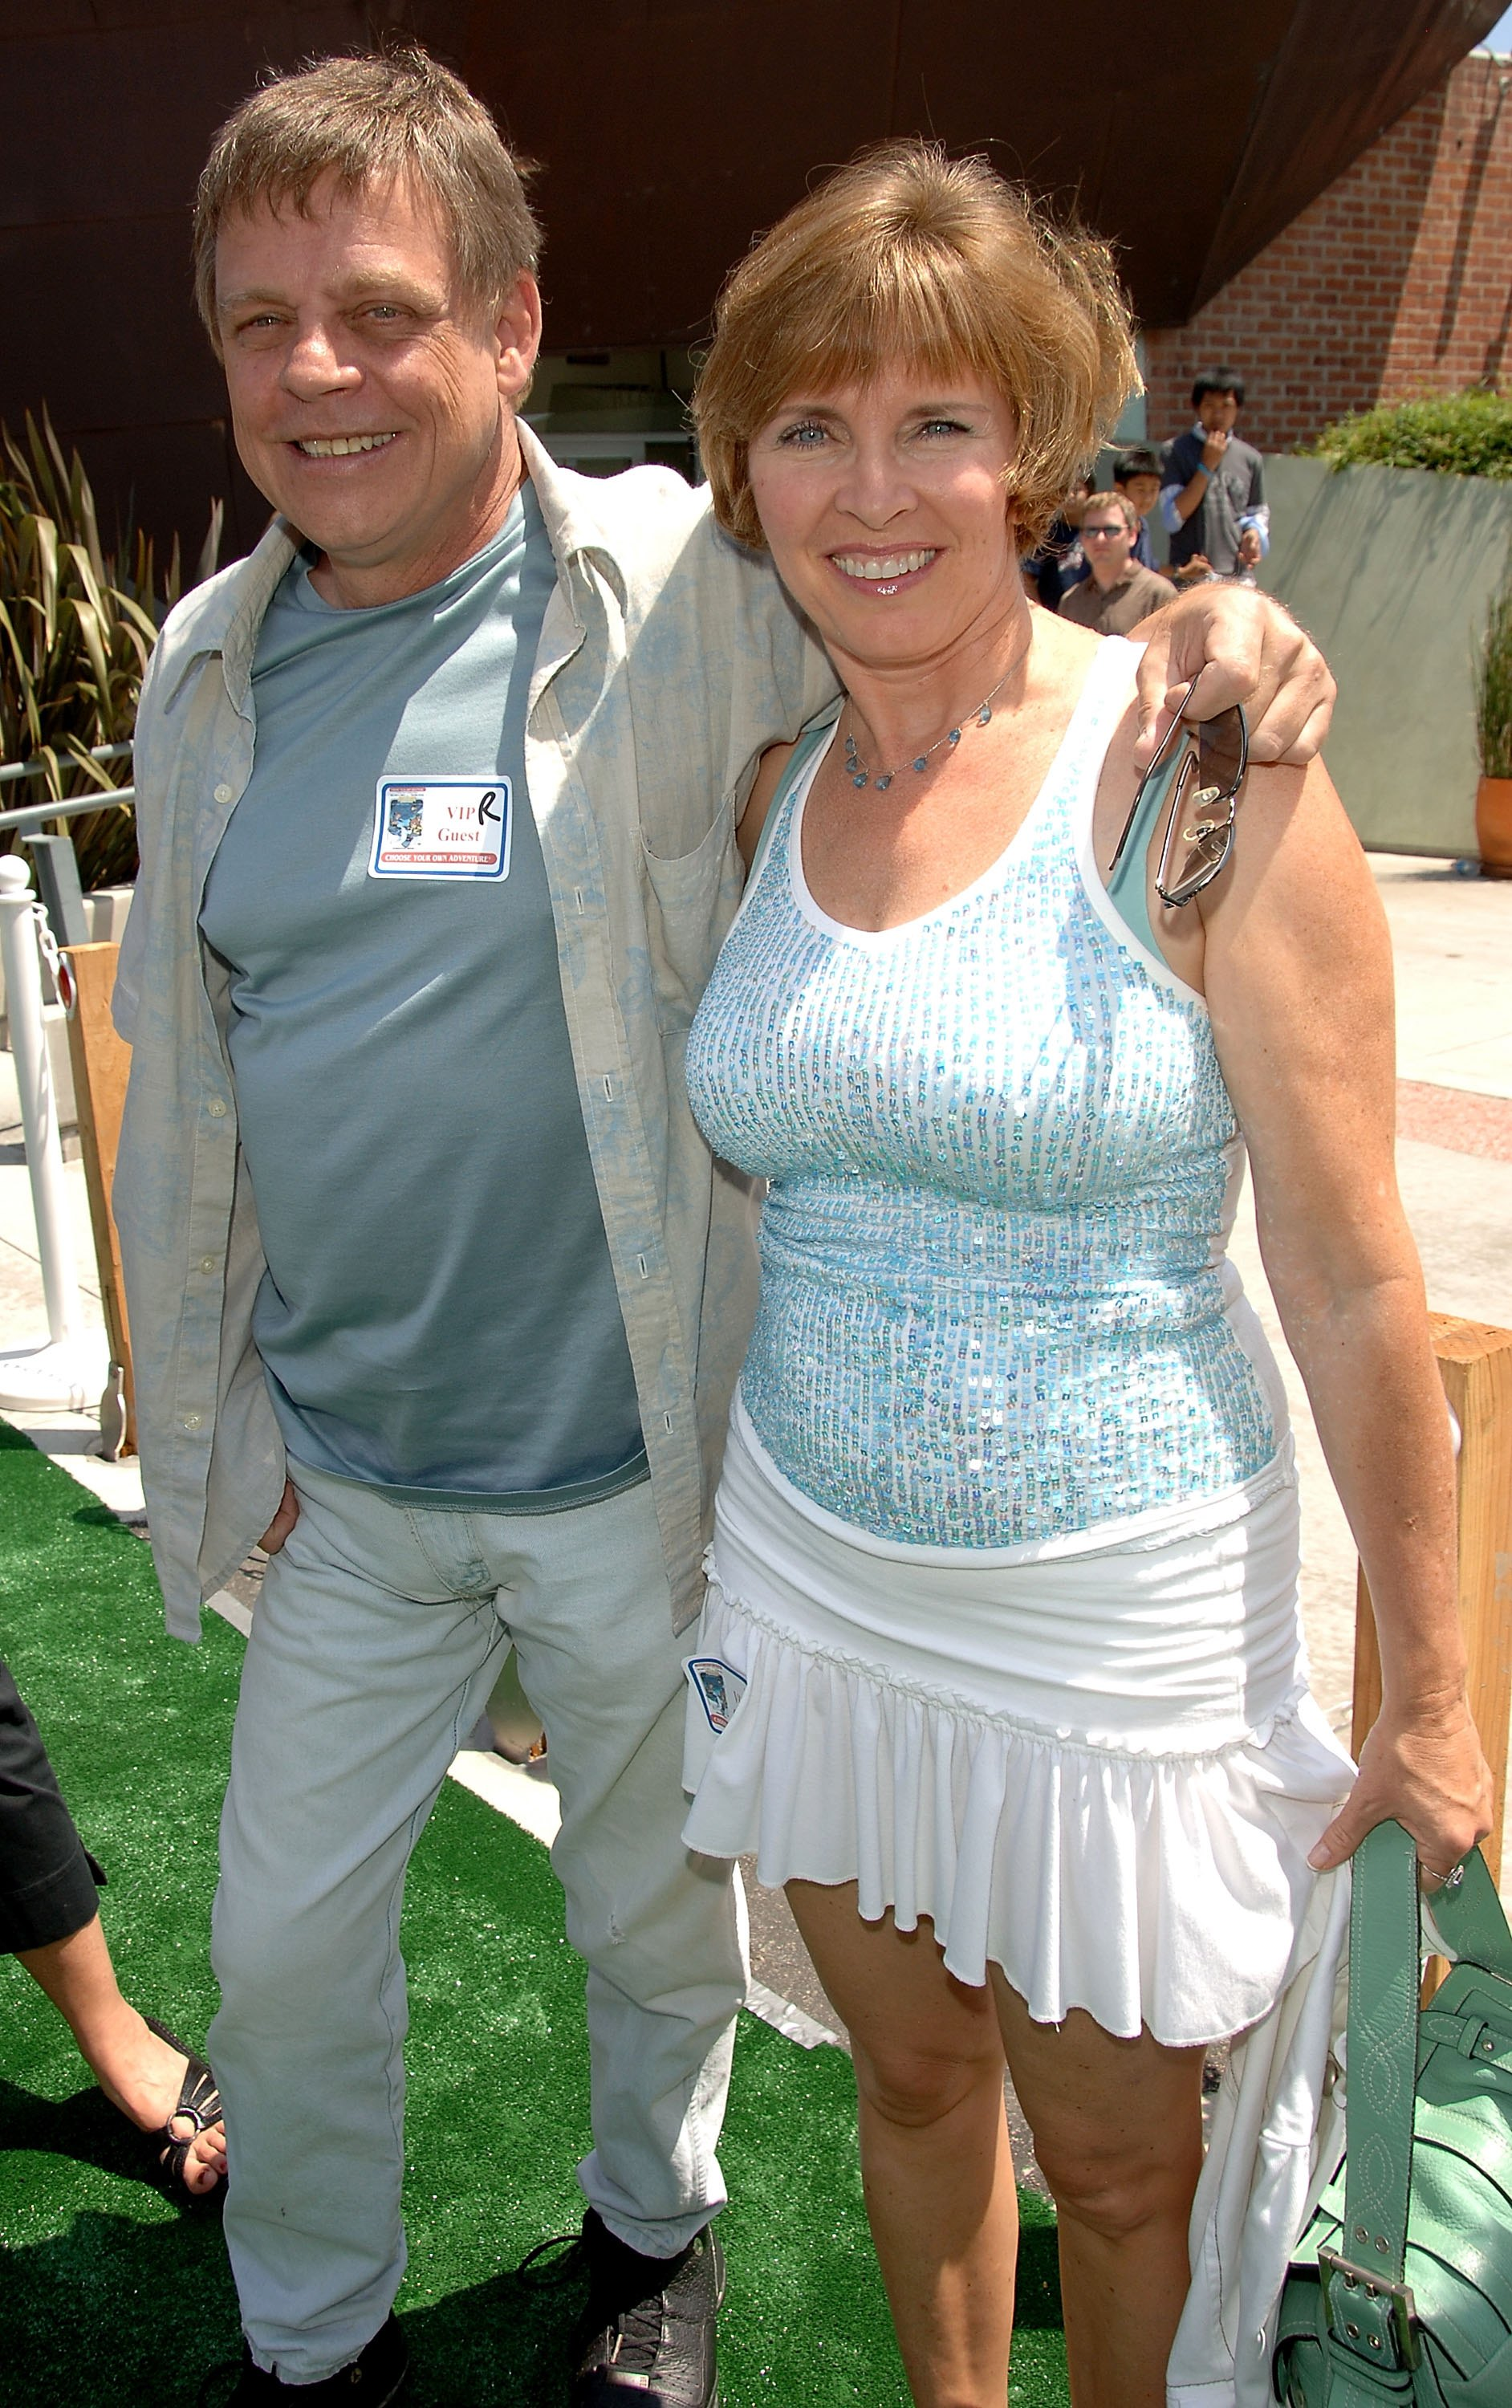 Actor Mark Hamill and wife Marilou York arrive at the DVD Release 'Choose Your Own Adventure: The Abominable Snowman' at the Star Eco Station on July 22, 2006 in Culver City, California. (Stephen Shugerman/Getty Images for Star Eco Station)